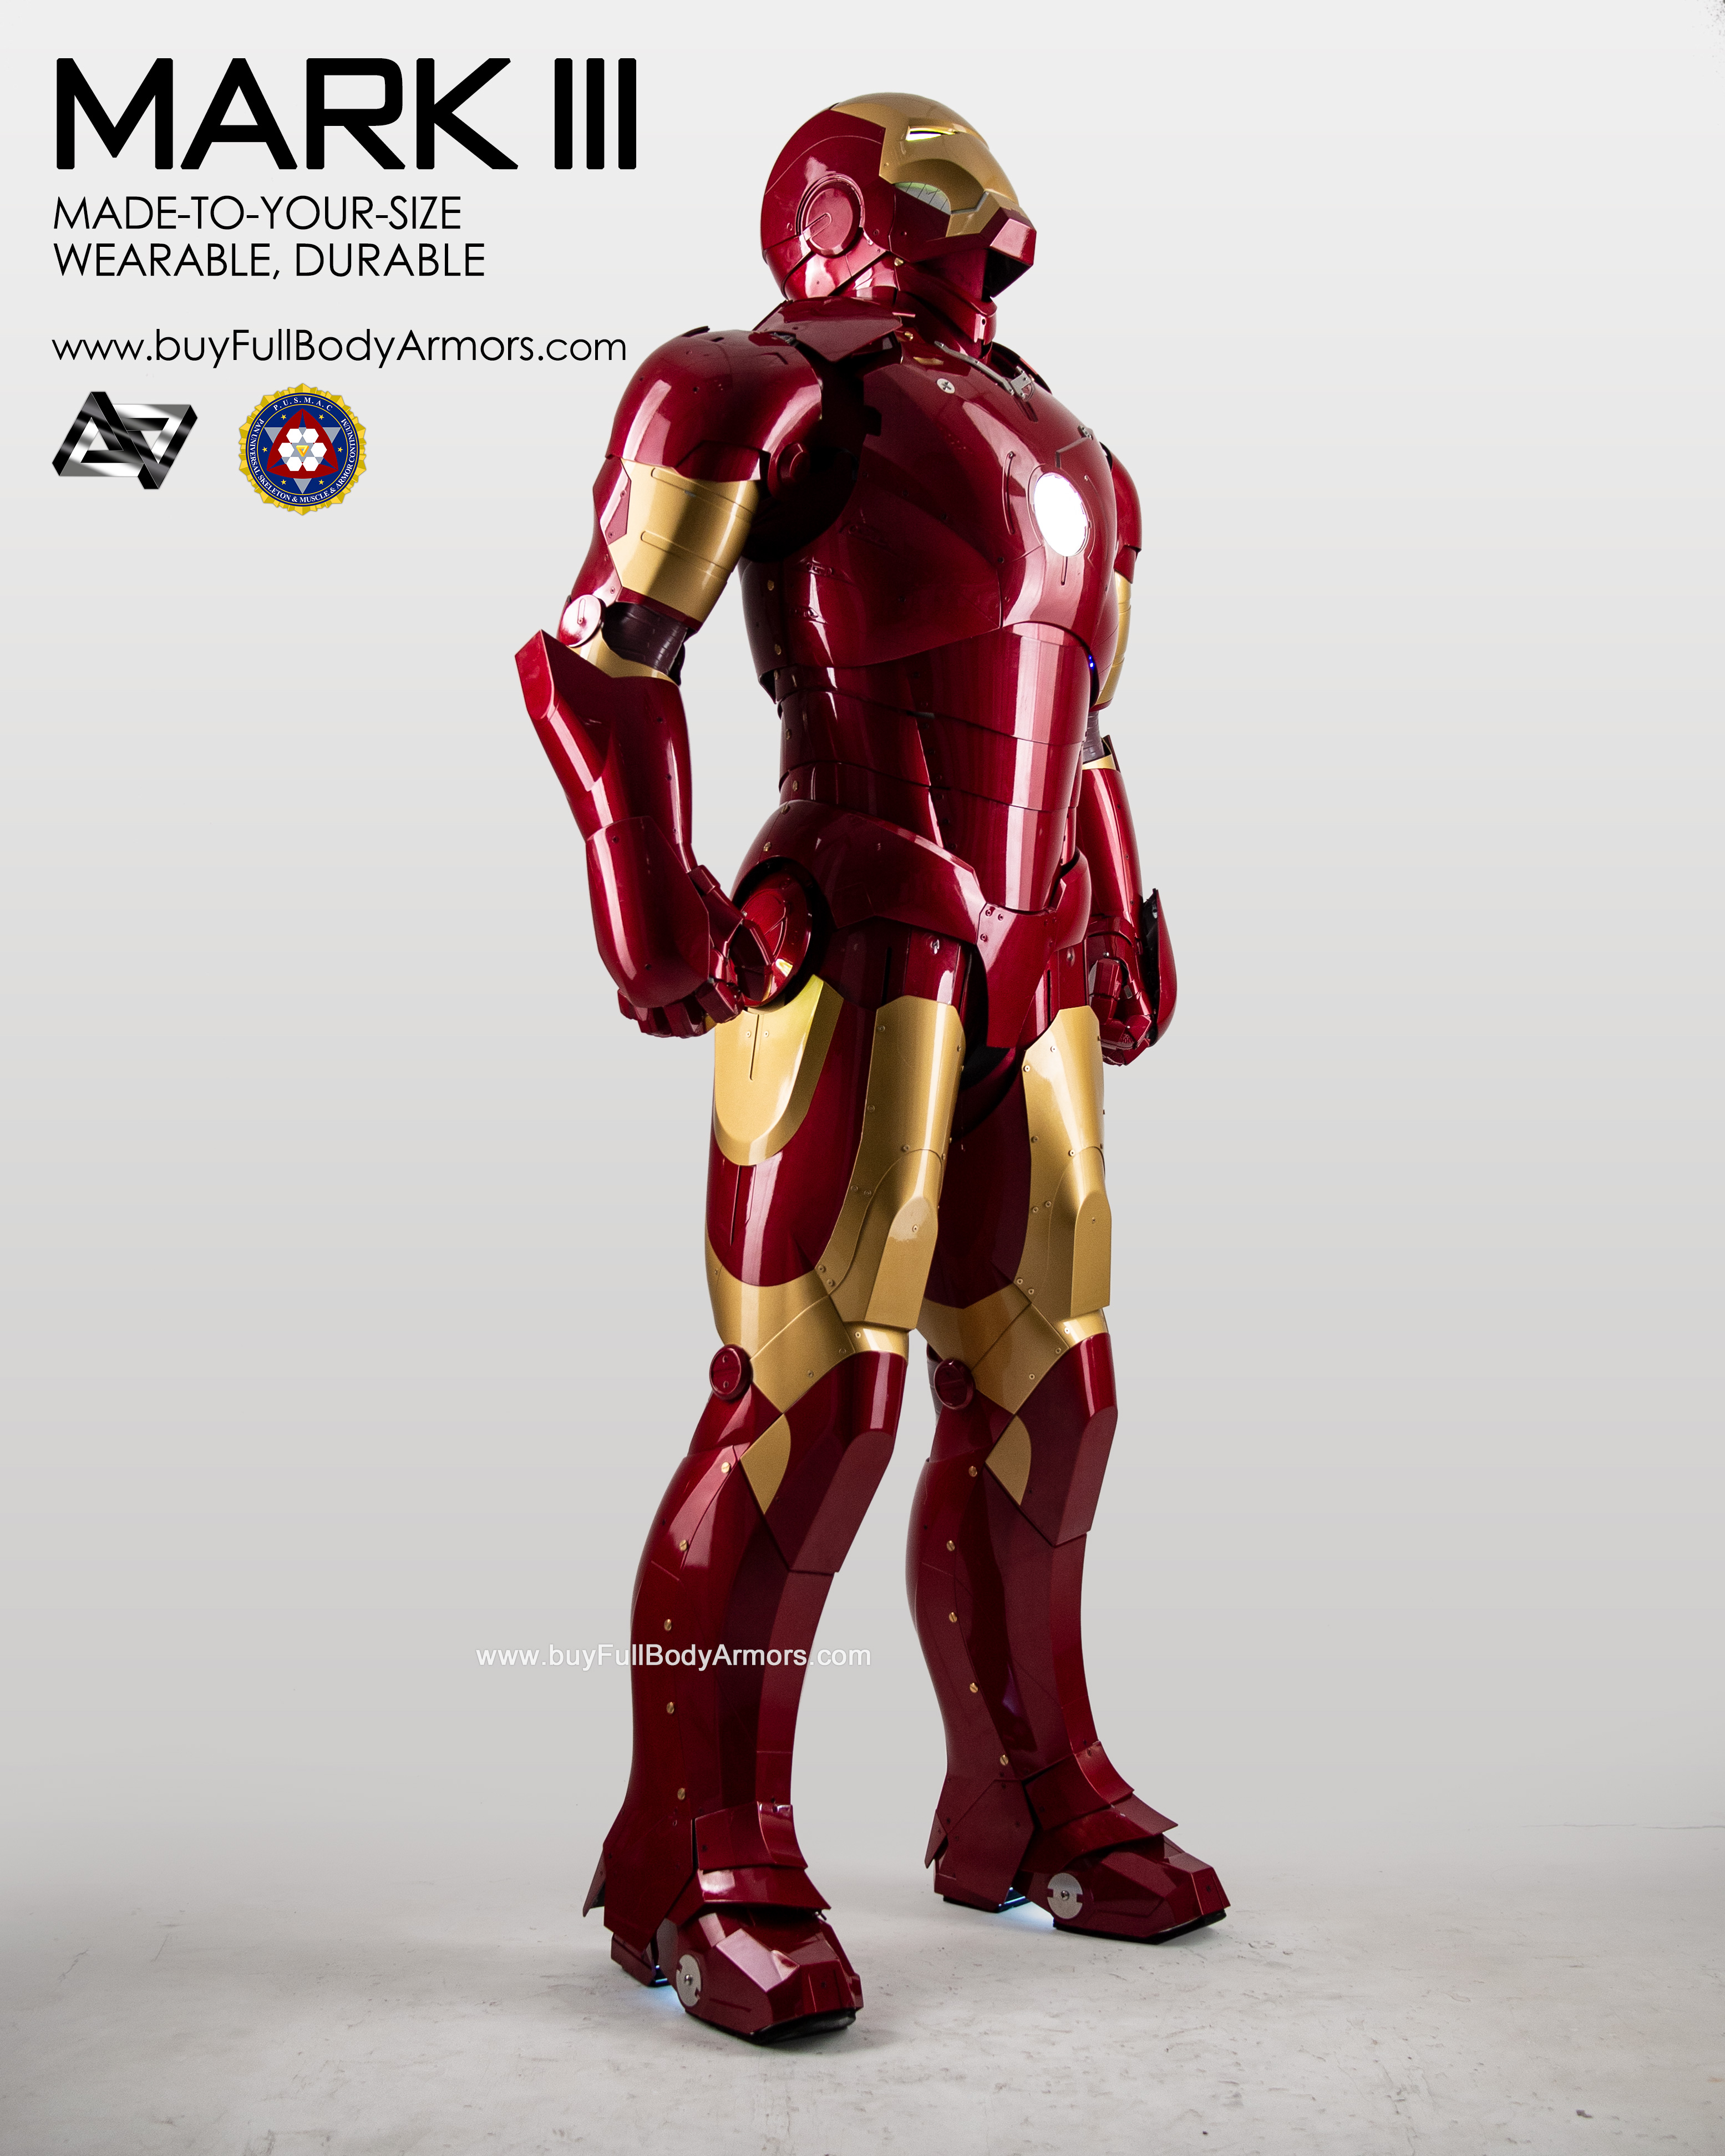 New Wearable Iron Man Mark 3 III Armor Costume Suit 1